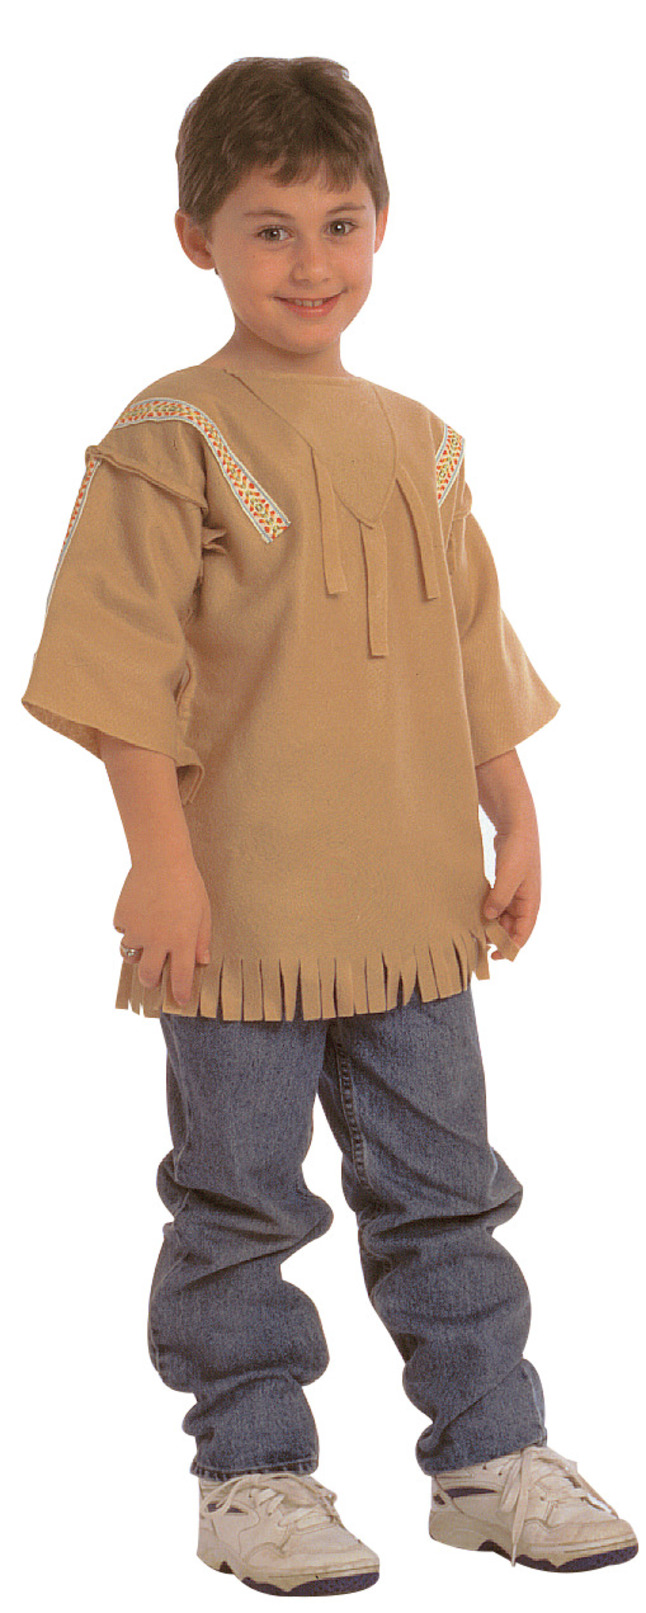 Dramatic Play Dress Up, Role Play Costumes, Item Number 299924